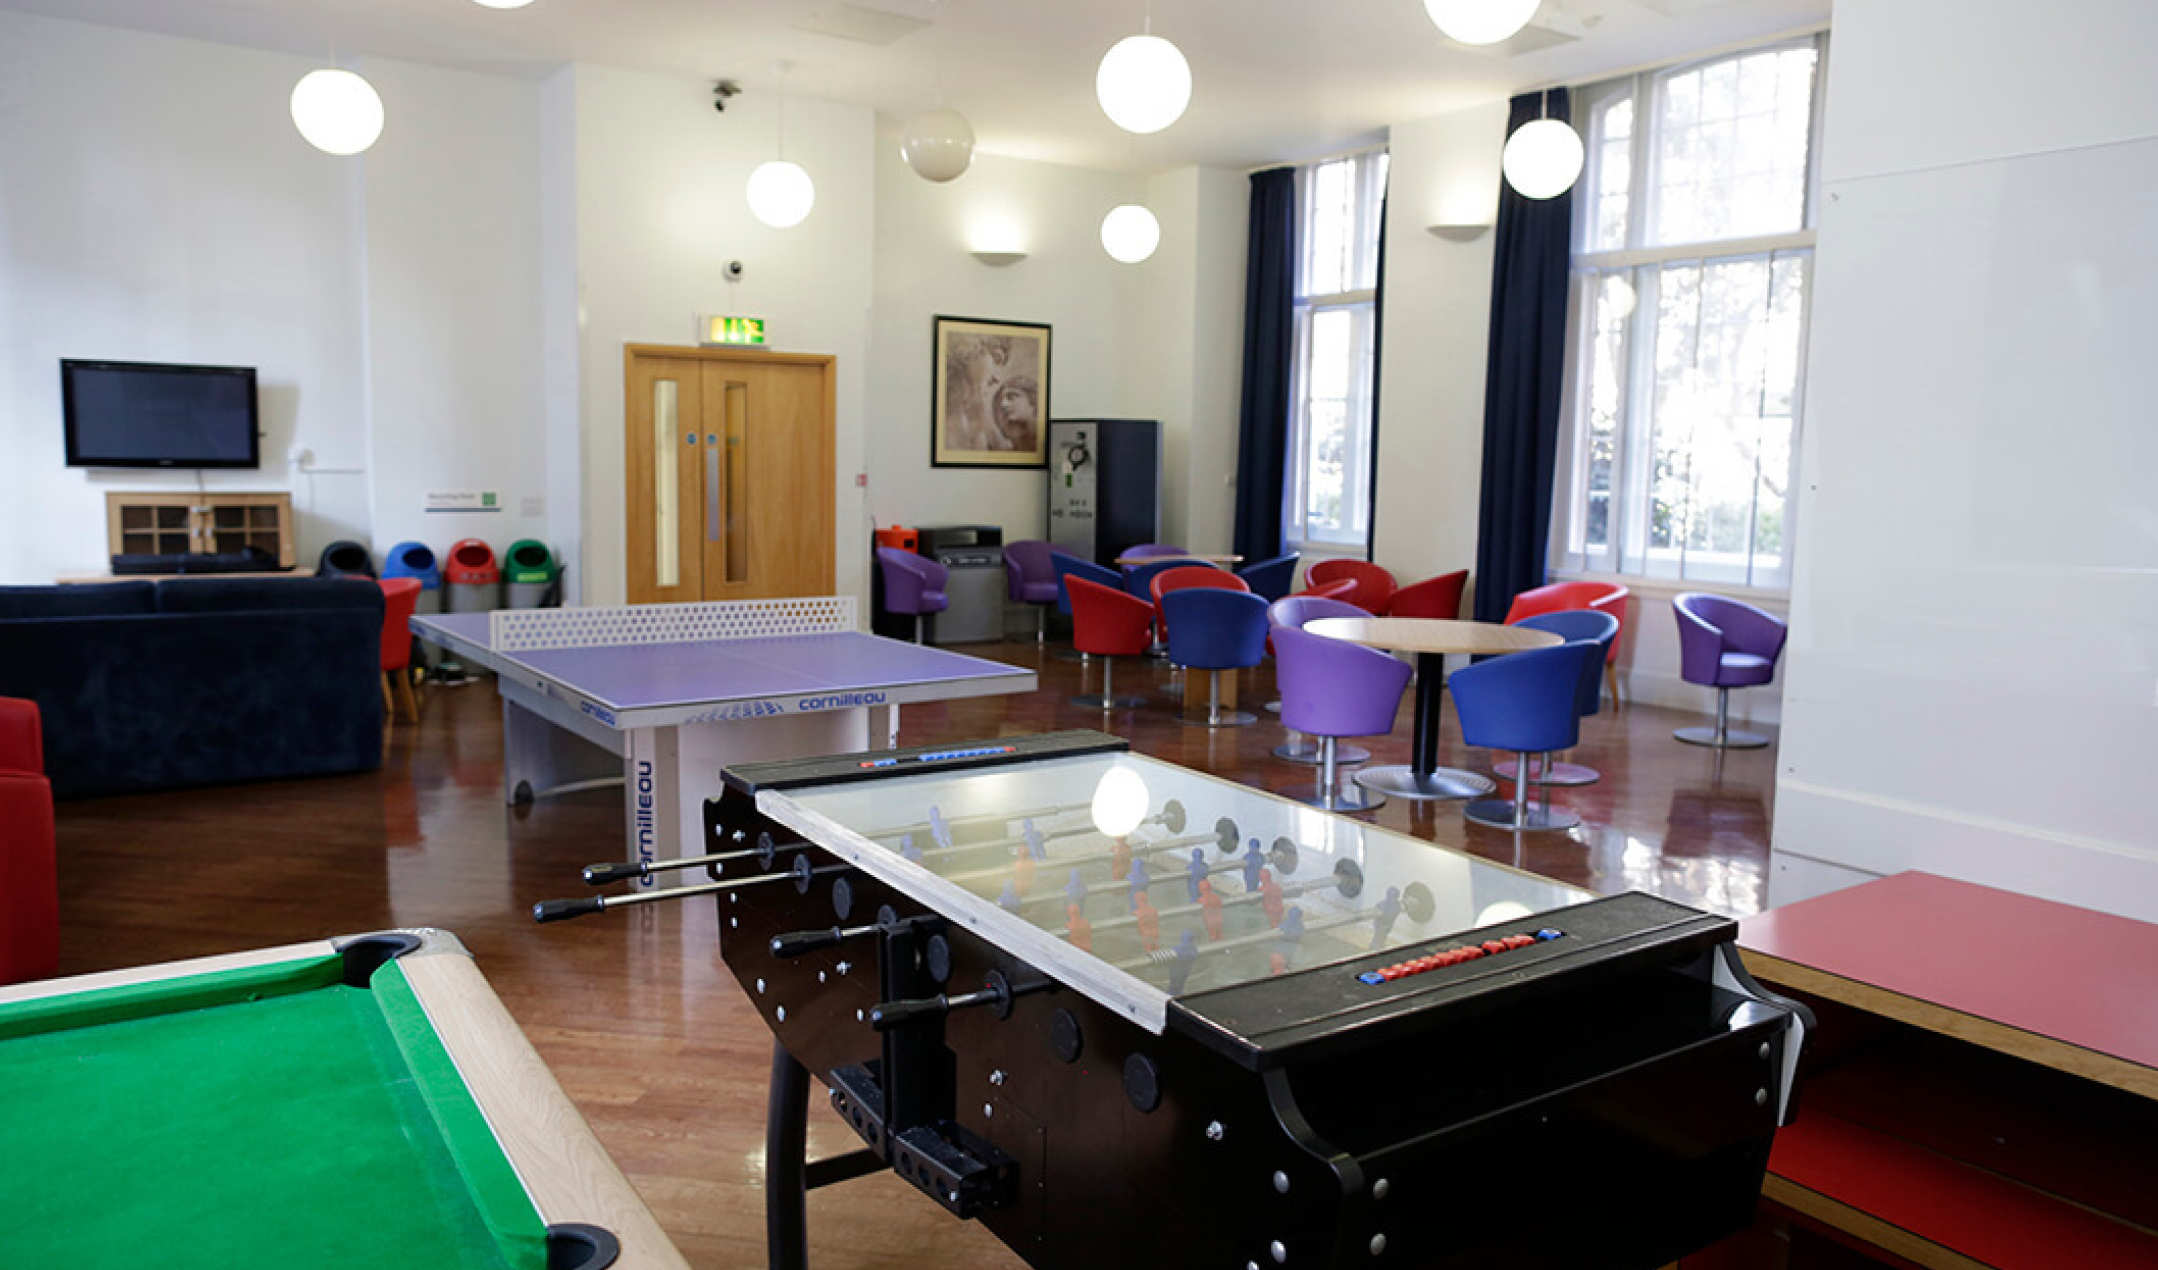 Beit Hall common room in South Kensington